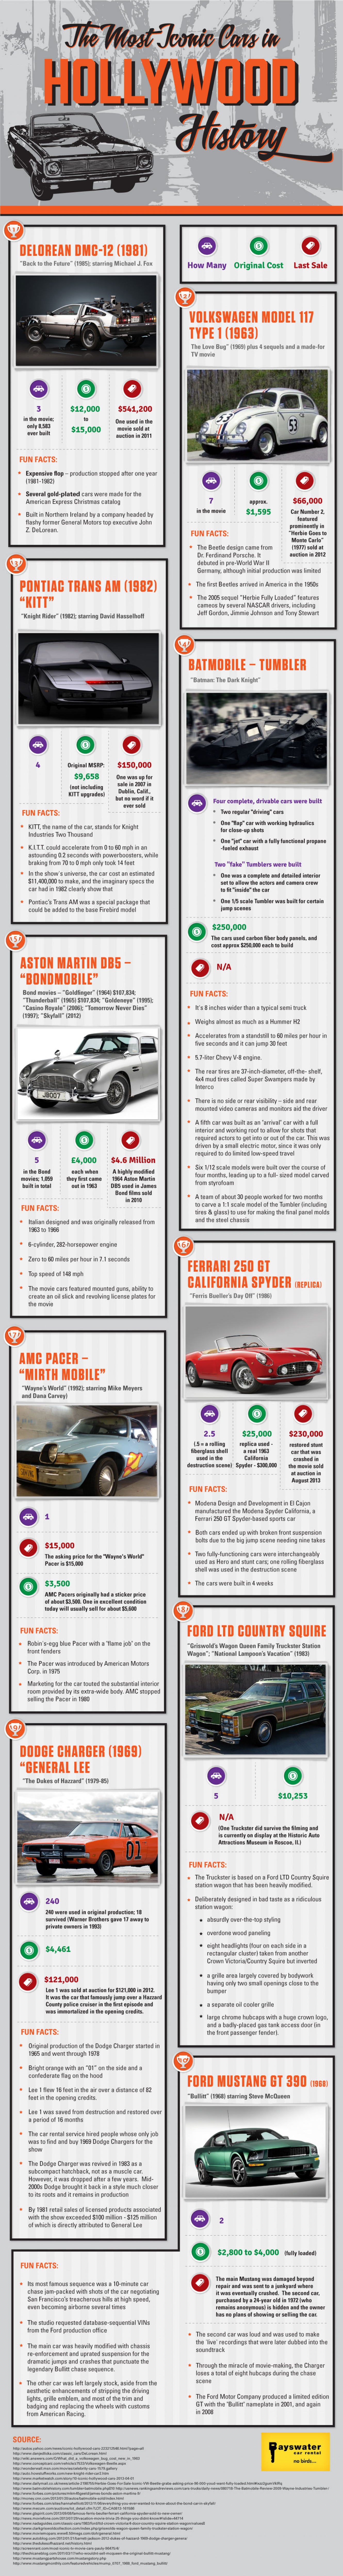 The most iconic cars in Hollywood History Infographic